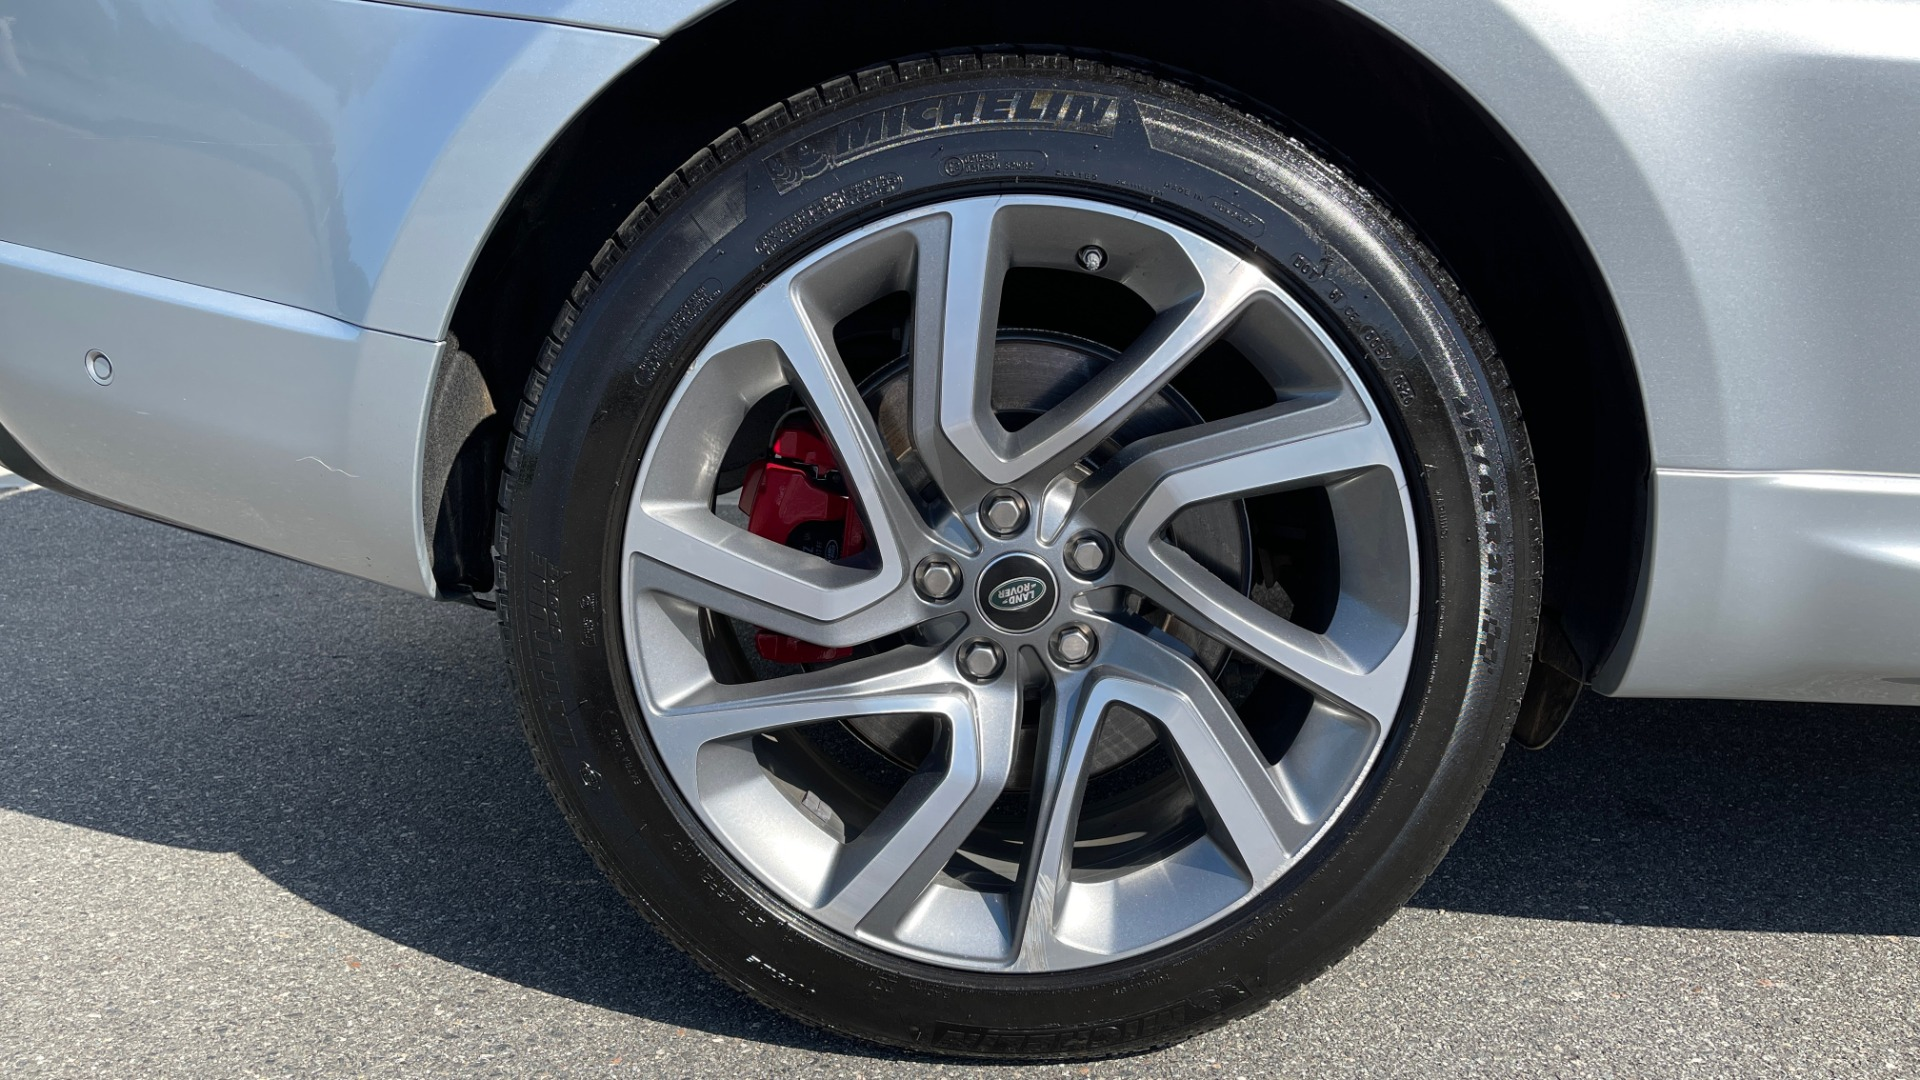 Used 2019 Land Rover RANGE ROVER SPORT HSE DYNAMIC / 3.0L SC V6 / 8-SPD / APPLE / NAV / SUNROOF / REARVIEW for sale Sold at Formula Imports in Charlotte NC 28227 88